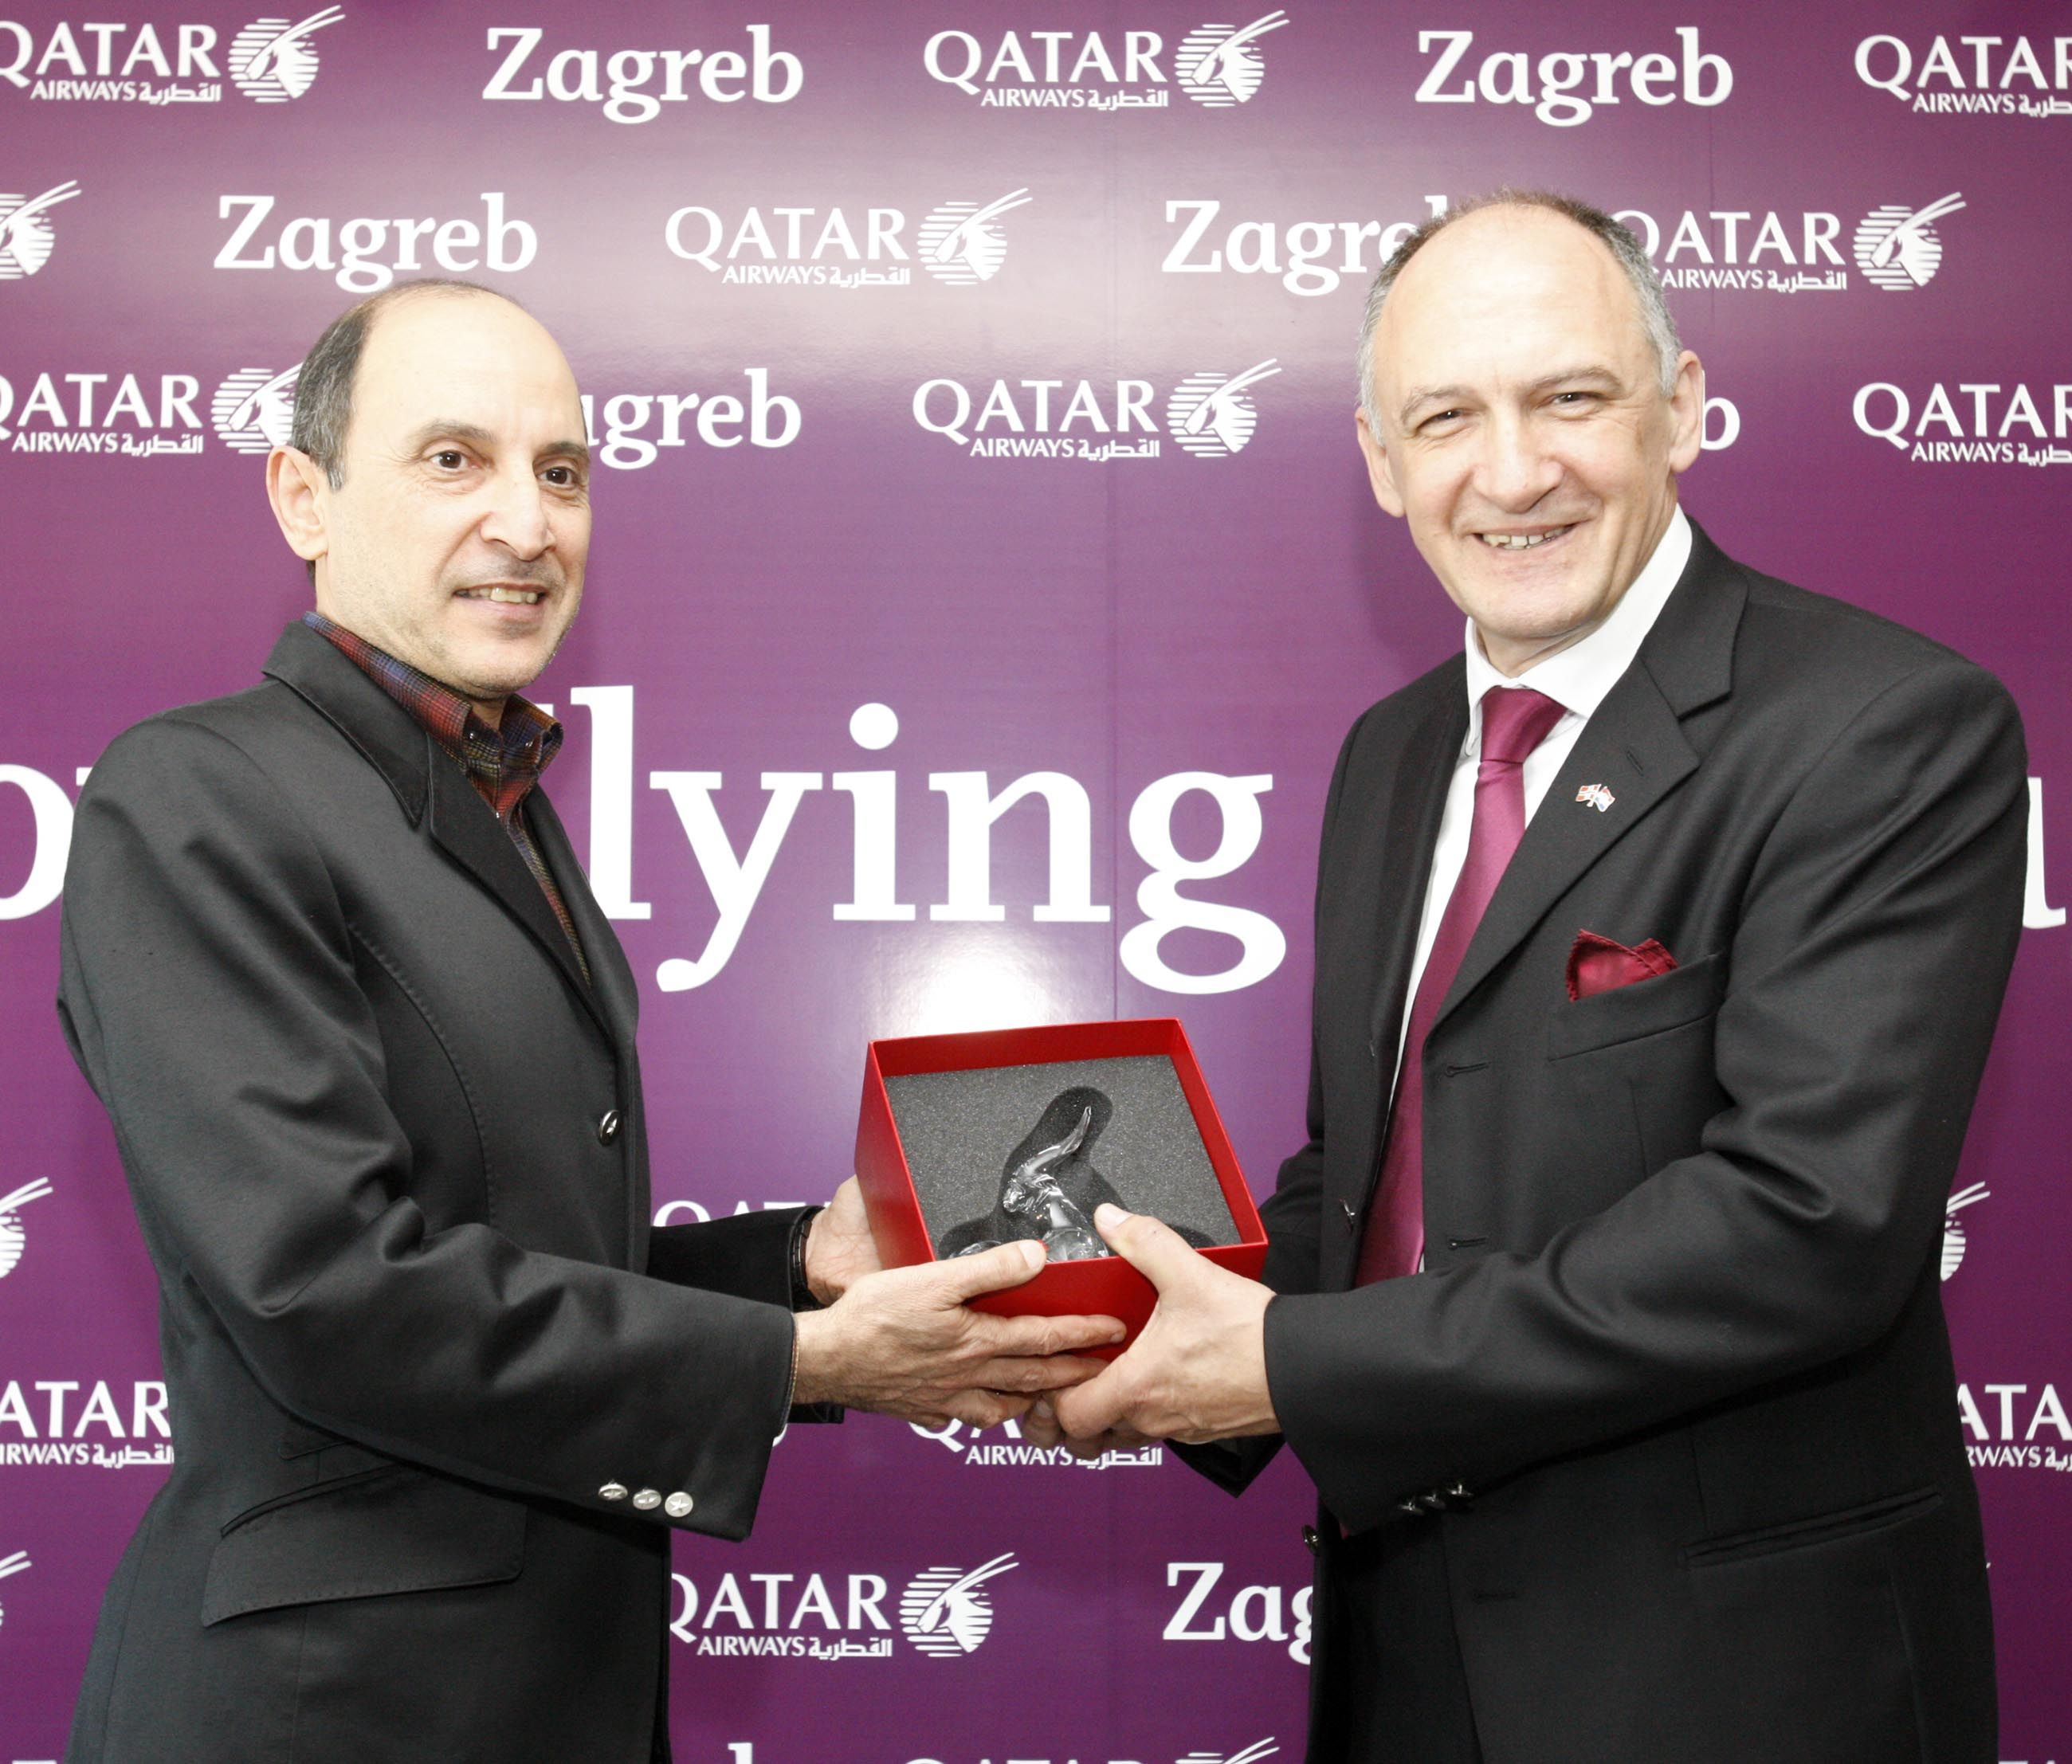 An Airport Ceremony Gift Exchange At Zagreb Airport Following The Arrival Of Qatar Airways First Flight To Cr Qatar Airways Flights To Croatia Booking Flights